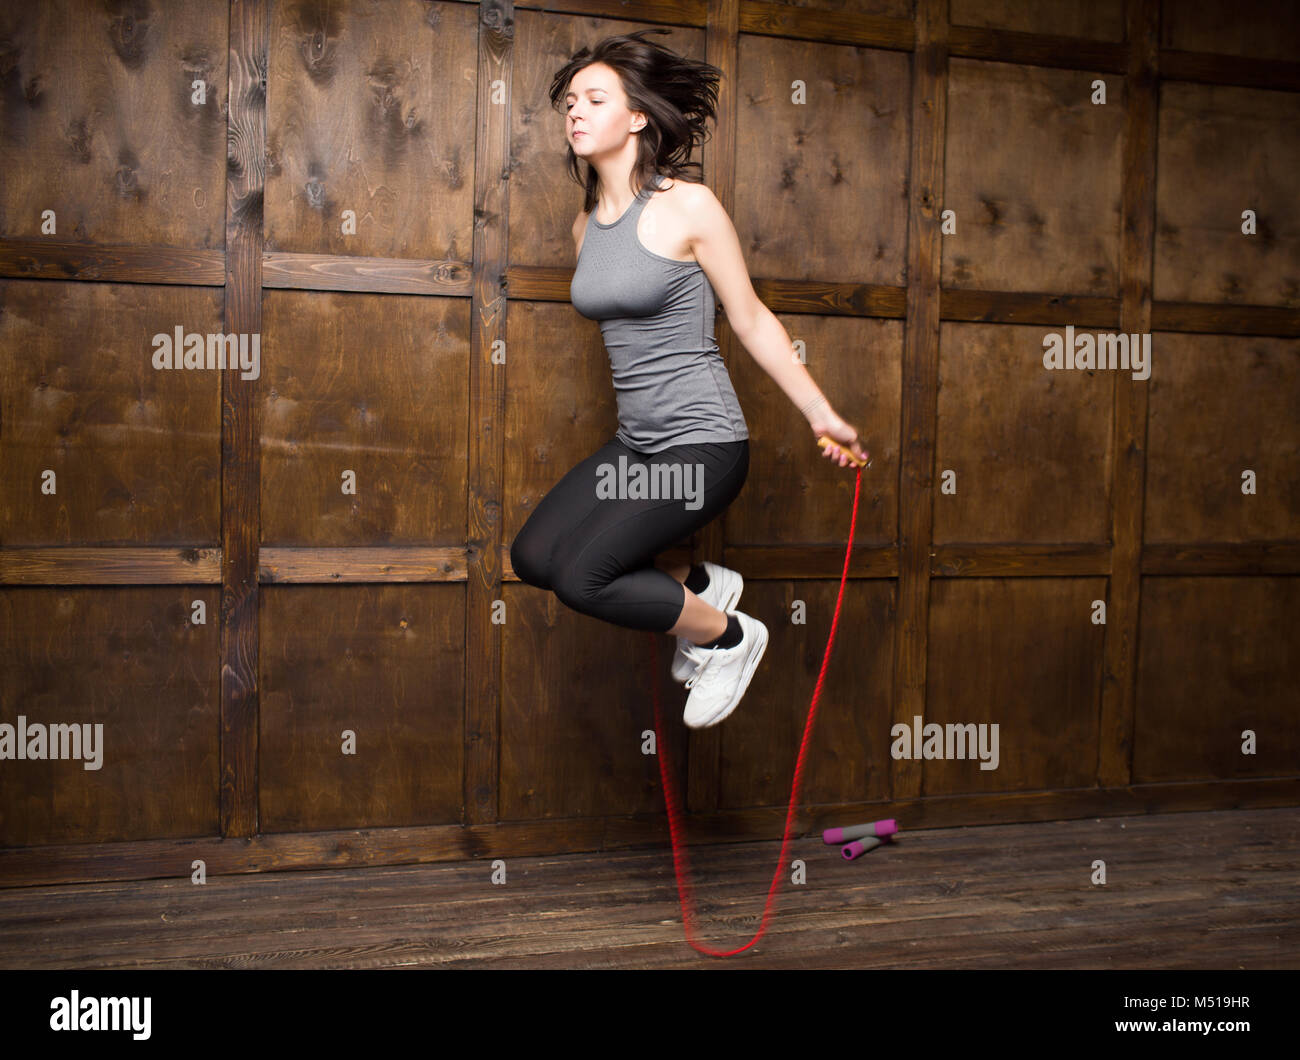 Girl jumping on skipping rope - Stock Image